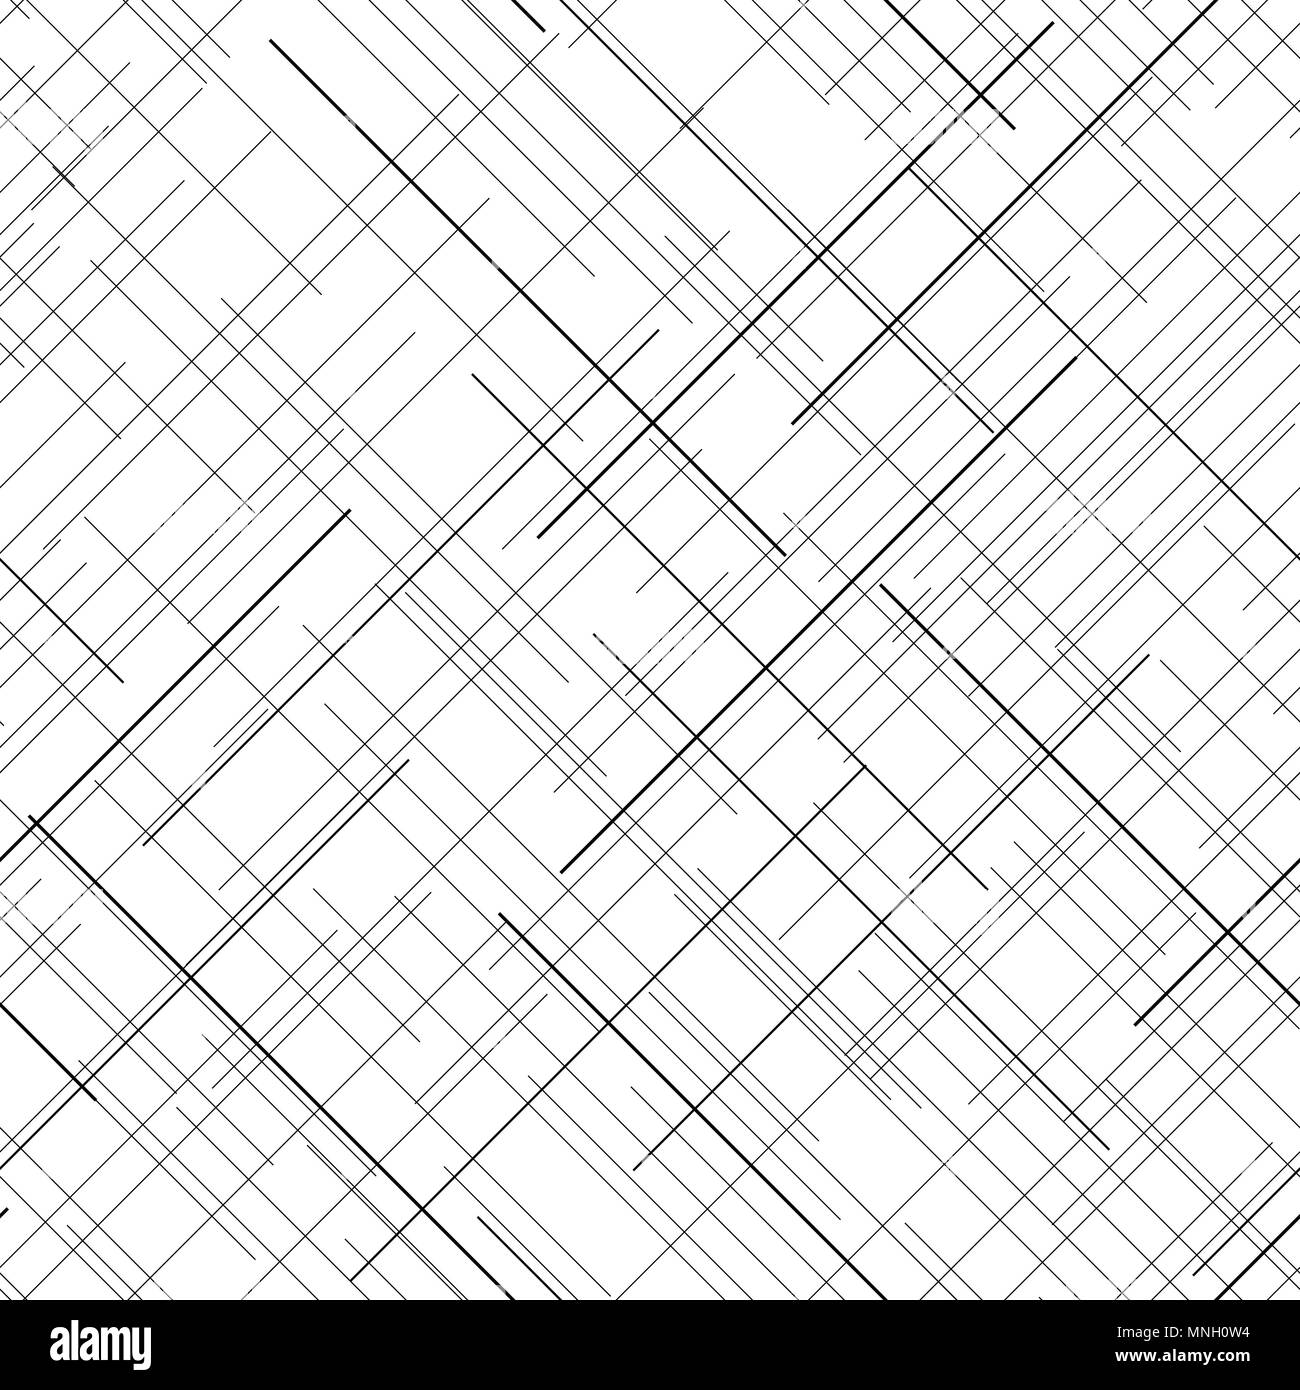 Plaid Fabric Texture Random Lines Seamless Pattern Abstract Monochrome Plain For Wallpaper Or